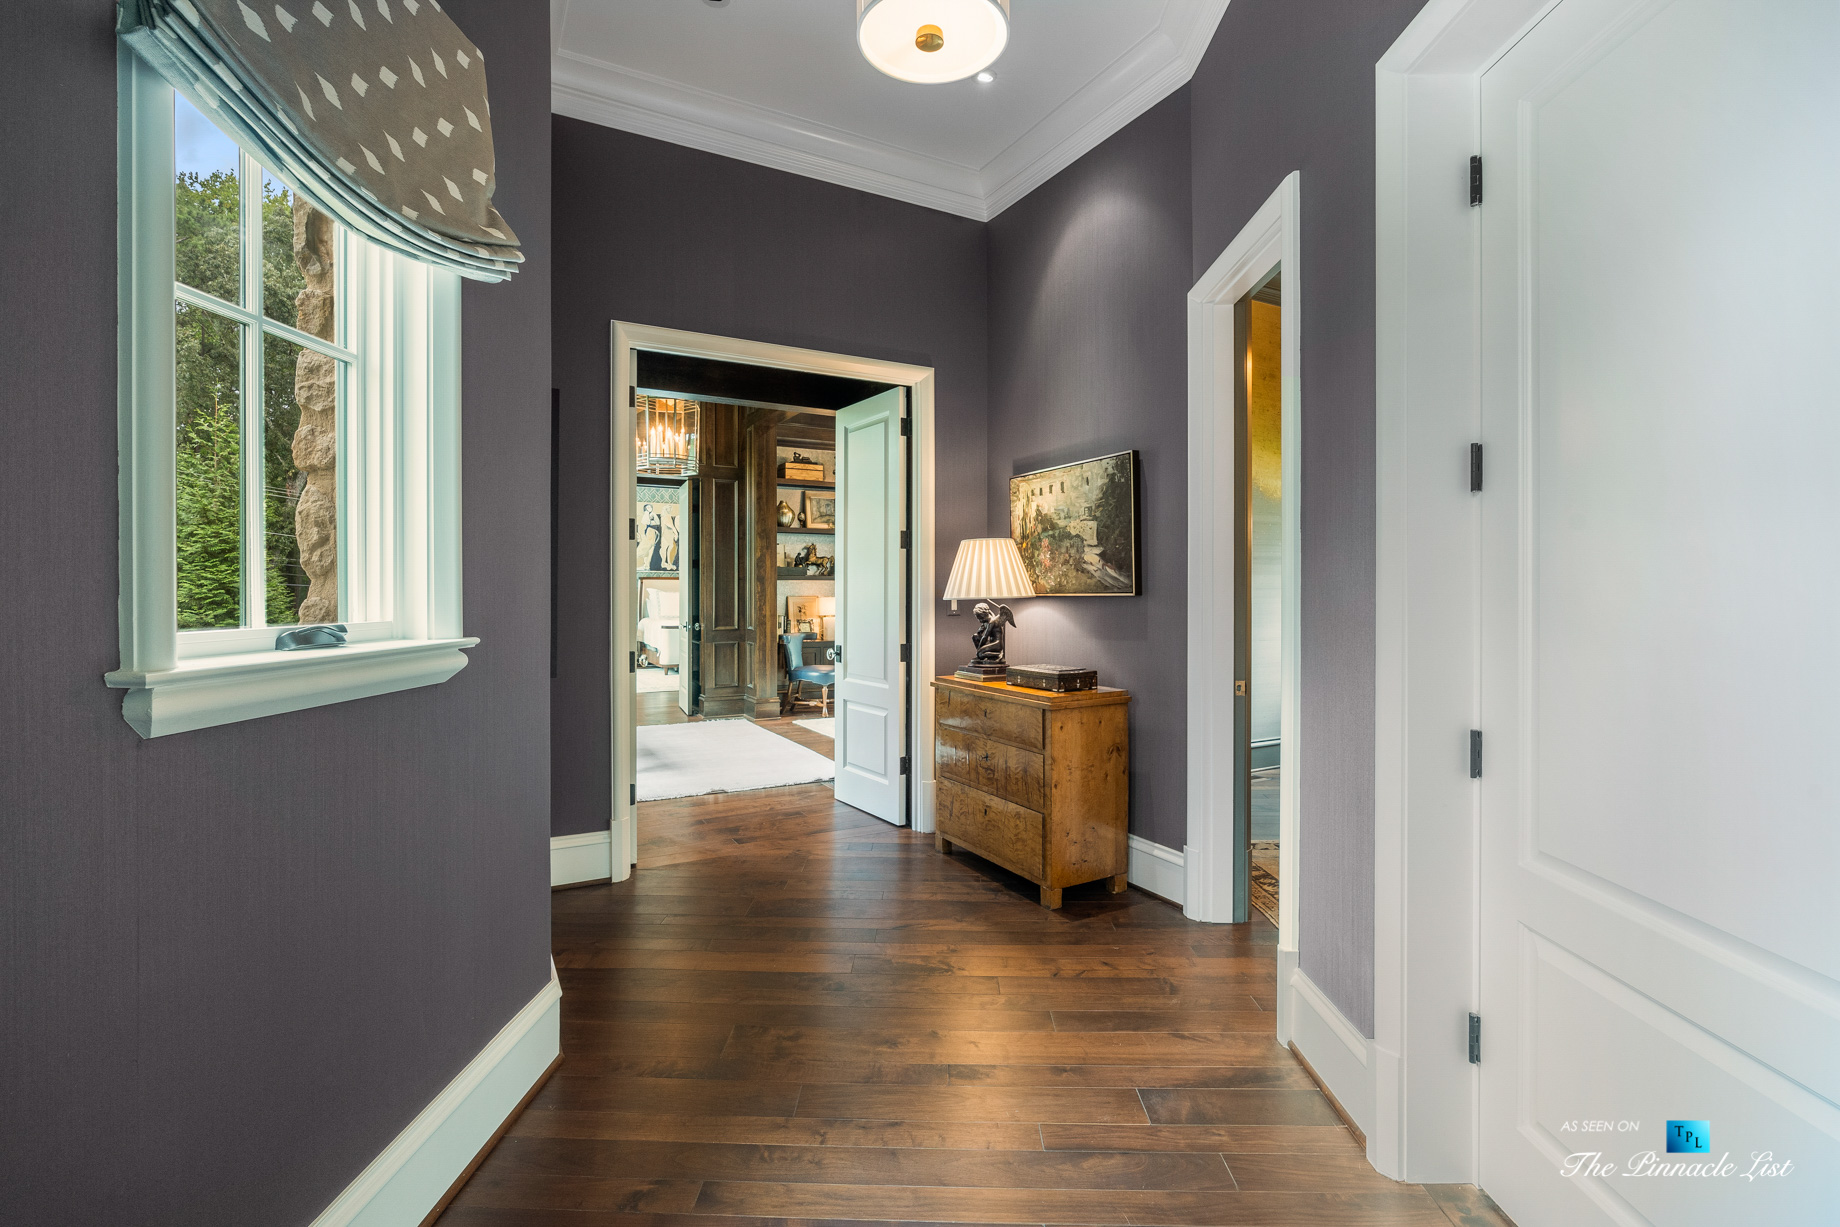 1150 W Garmon Rd, Atlanta, GA, USA - Hallway - Luxury Real Estate - Buckhead Estate Home